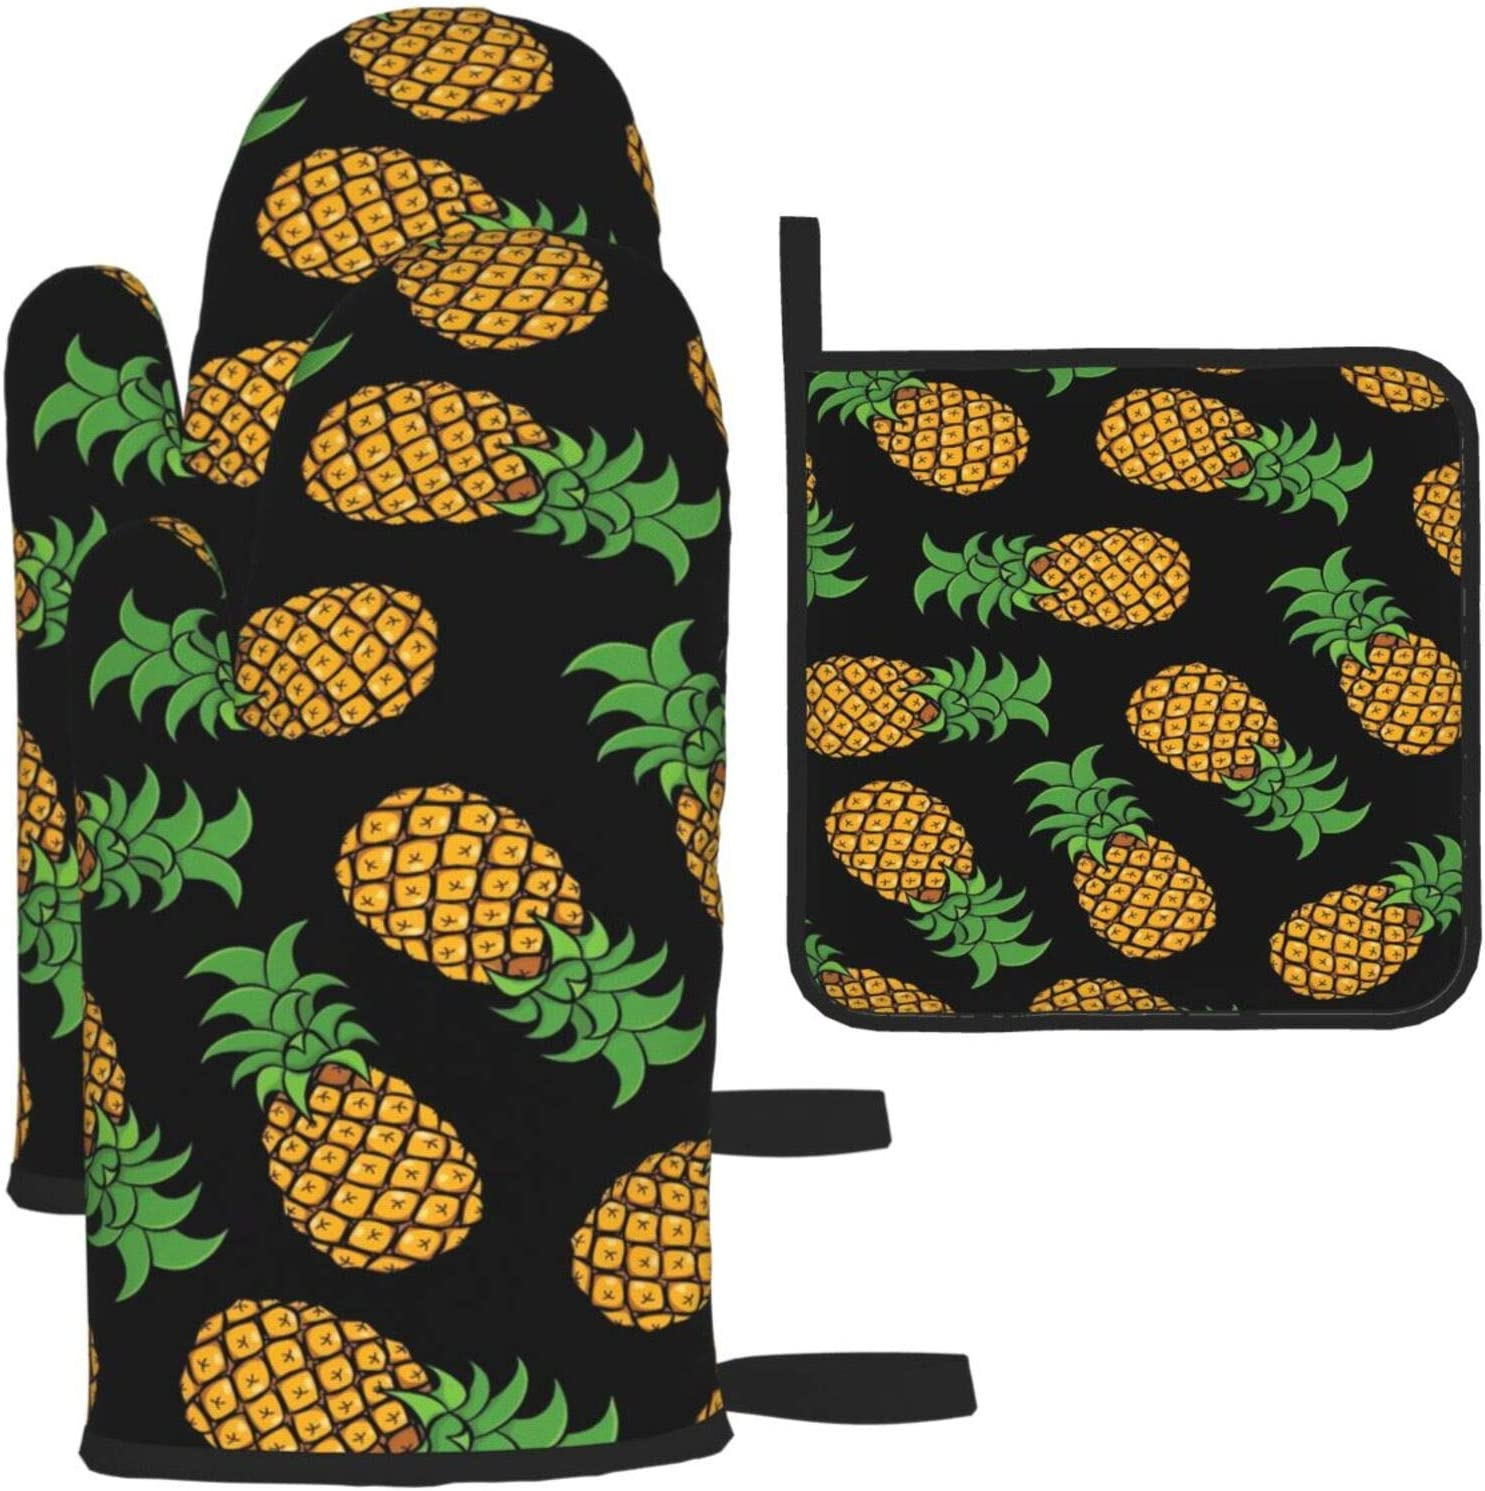 Tropical Pineapple Oven Mitts and Pot Holders Sets Hawaii Summer Fruit Heat Resistant Kitchen Microwave Oven Golves and Hot Pads for Cooking Baking Grilling BBQ